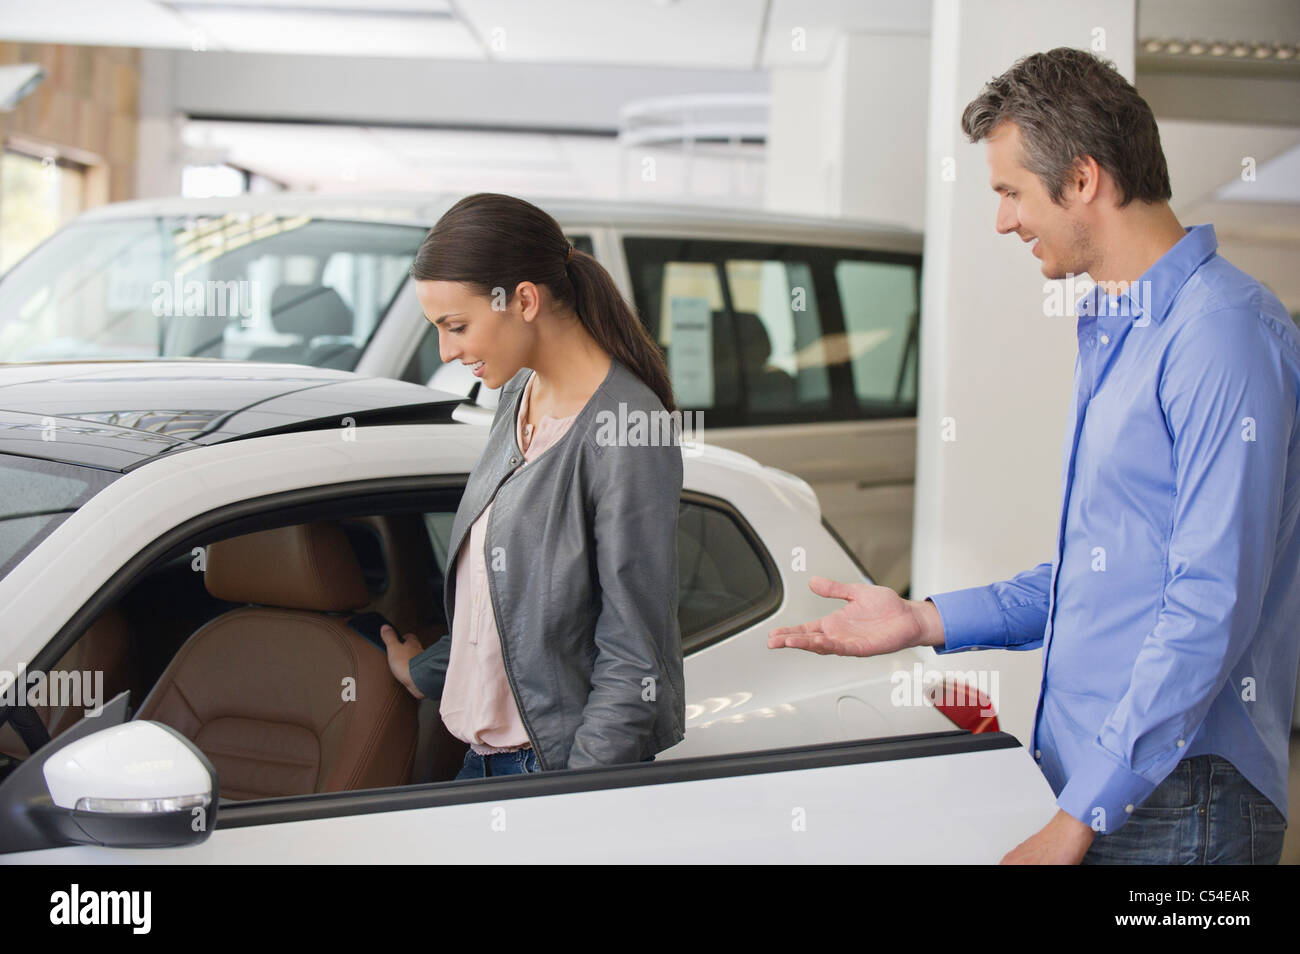 Young woman checking car from inside while man holding the door - Stock Image